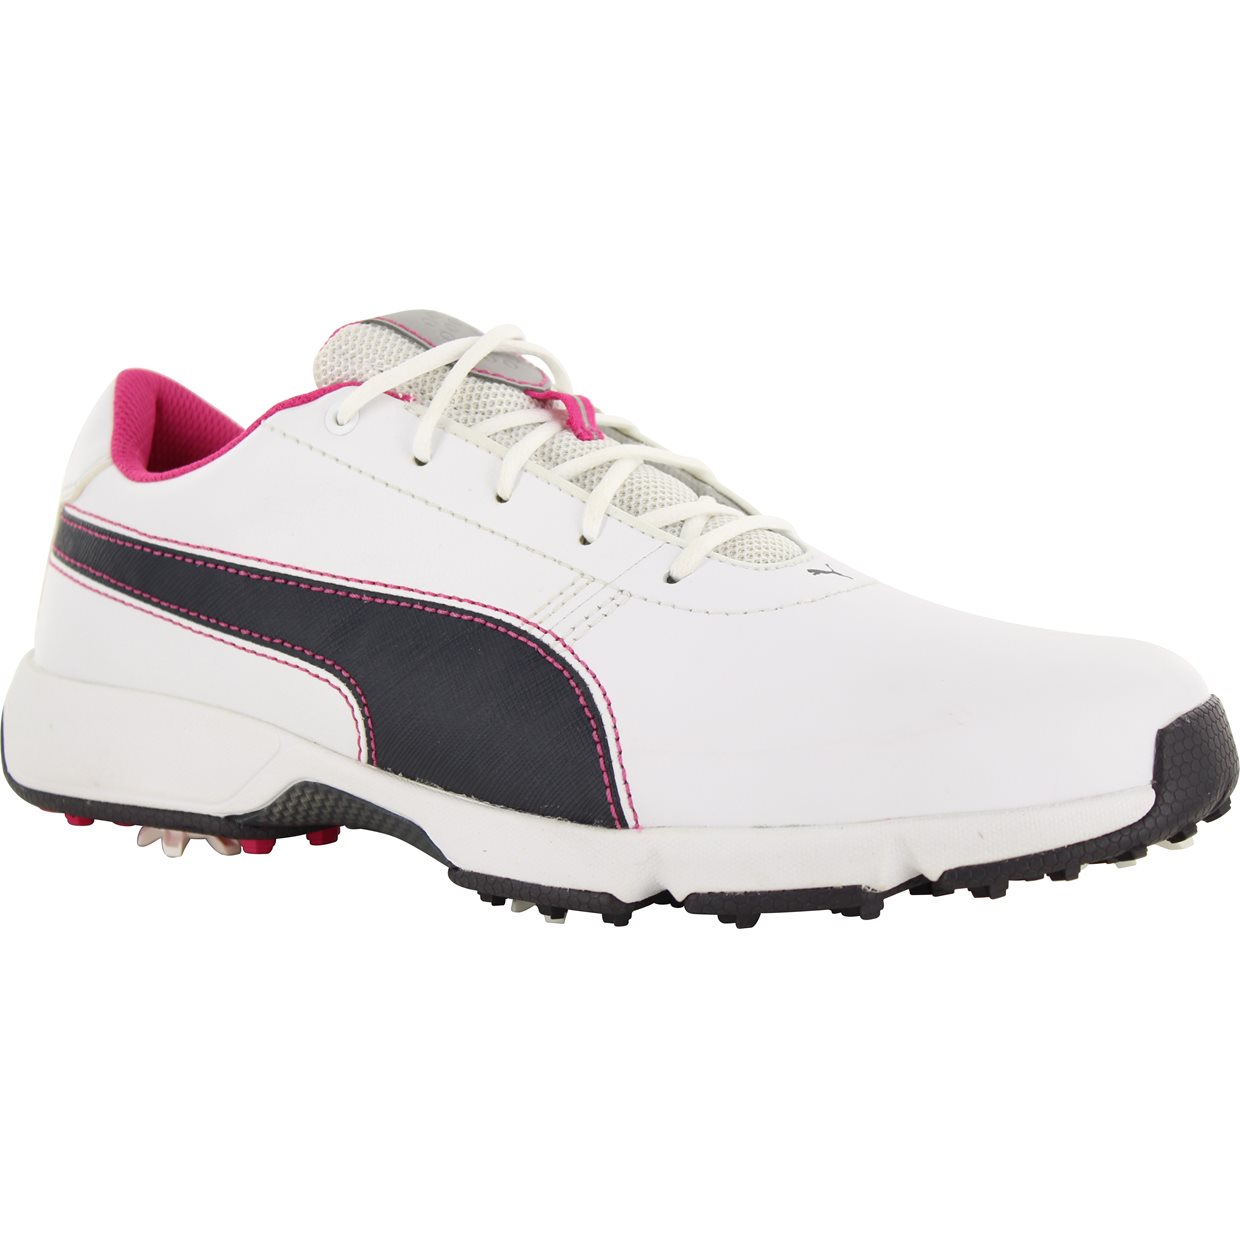 Puma Ignite Drive Golf Shoes